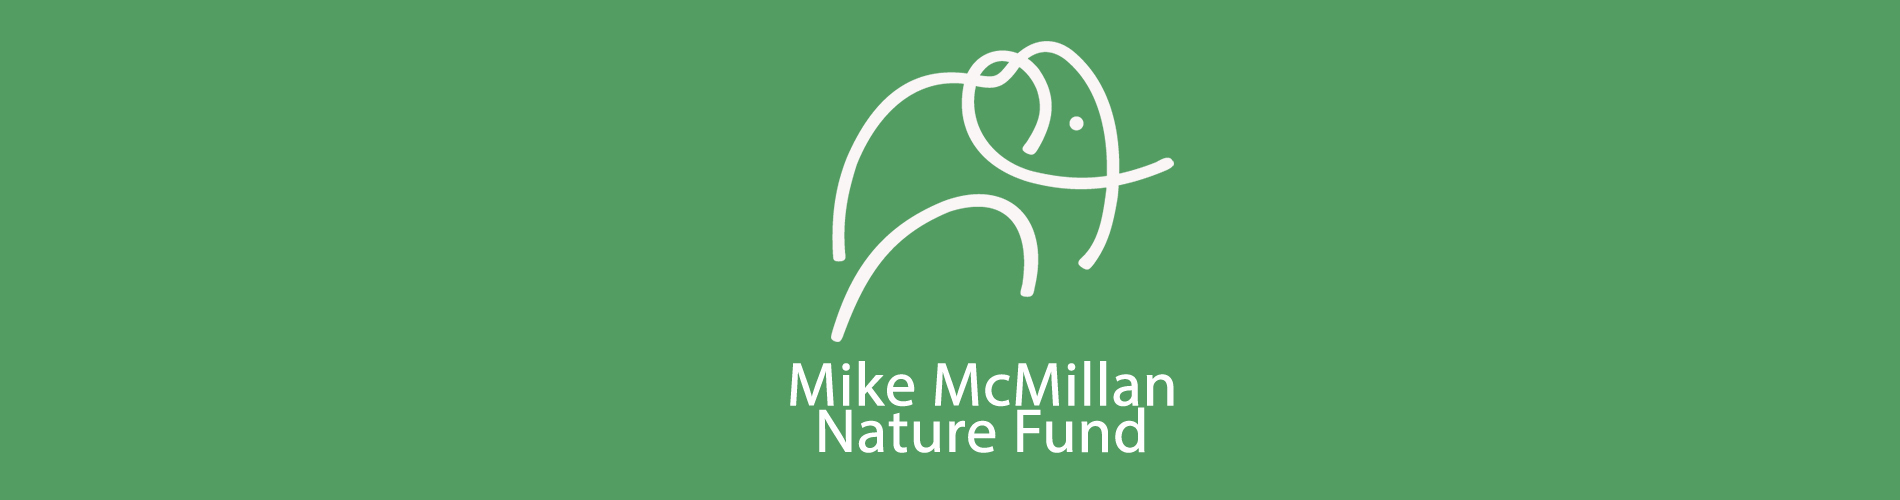 Mike McMillan Nature Fund